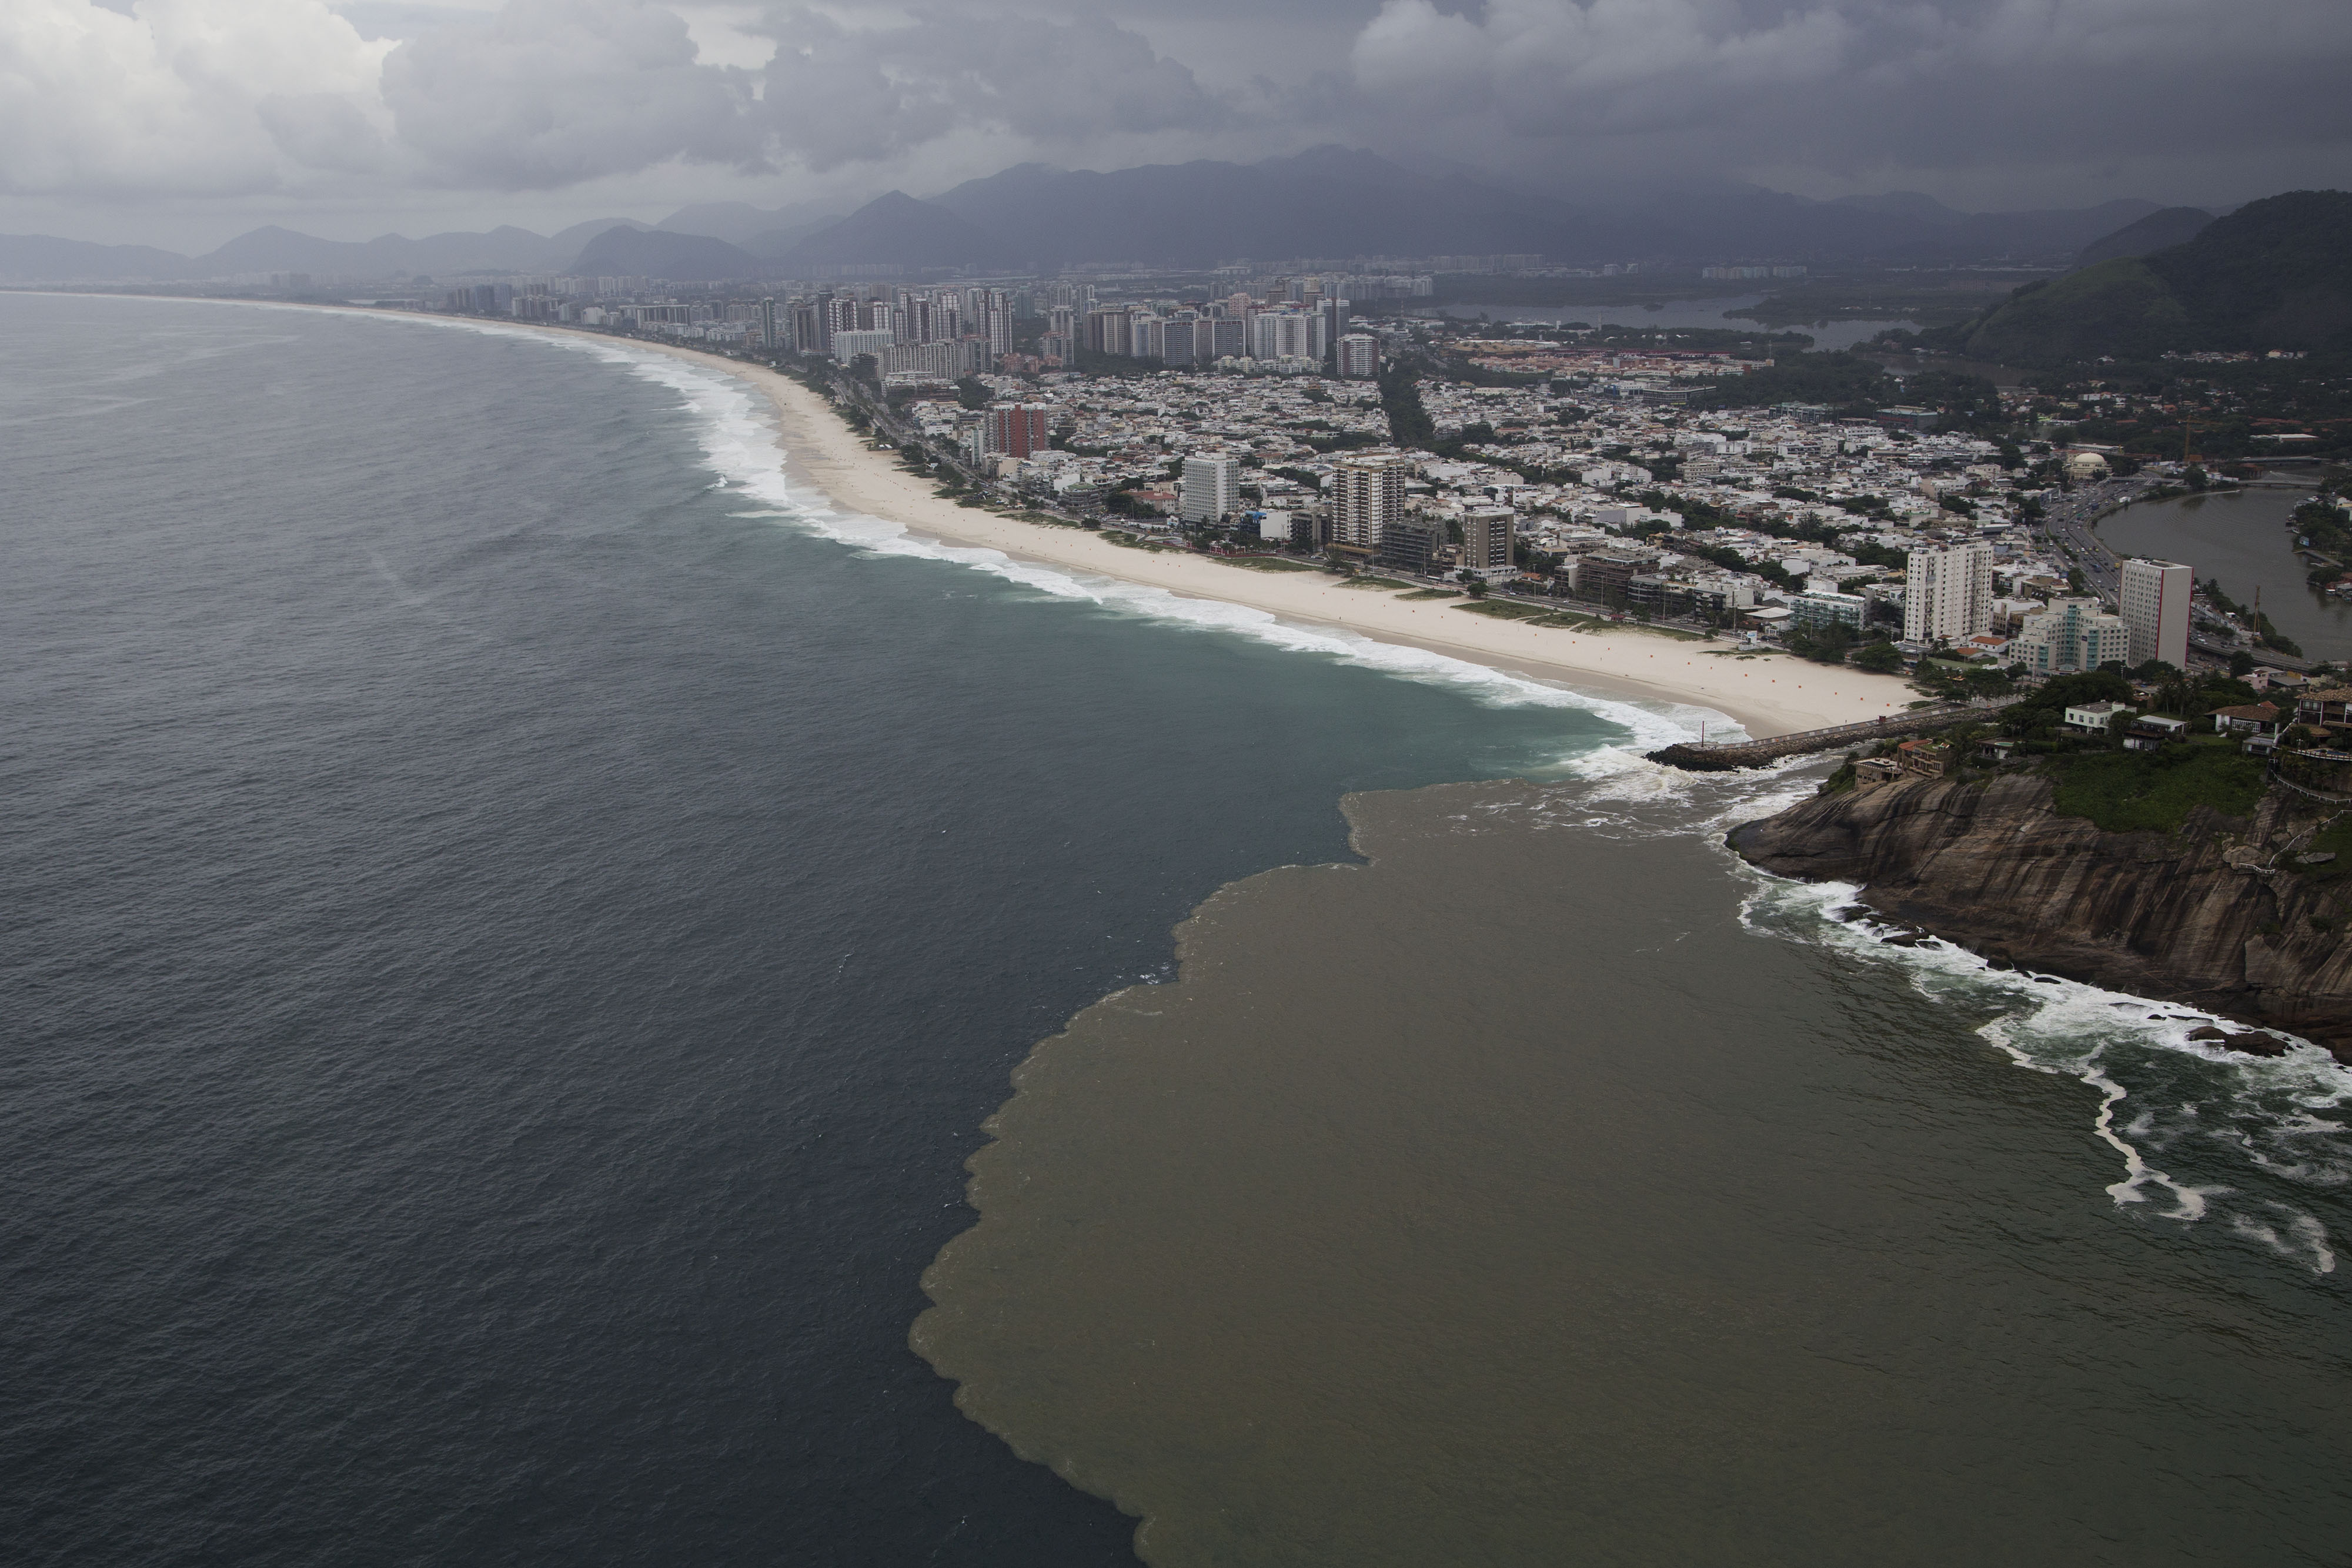 """This aerial view shows polluted water flowing from the Barra channel to the Barra beach, in Rio de Janeiro, Brazil, Monday, March 23, 2015. Rio de Janeiro's mayor acknowledged in a television interview Monday that the run-up to the 2016 games has proven a """"wasted opportunity"""" to clean up the city's blighted waterways. (AP Photo/Felipe Dana)"""